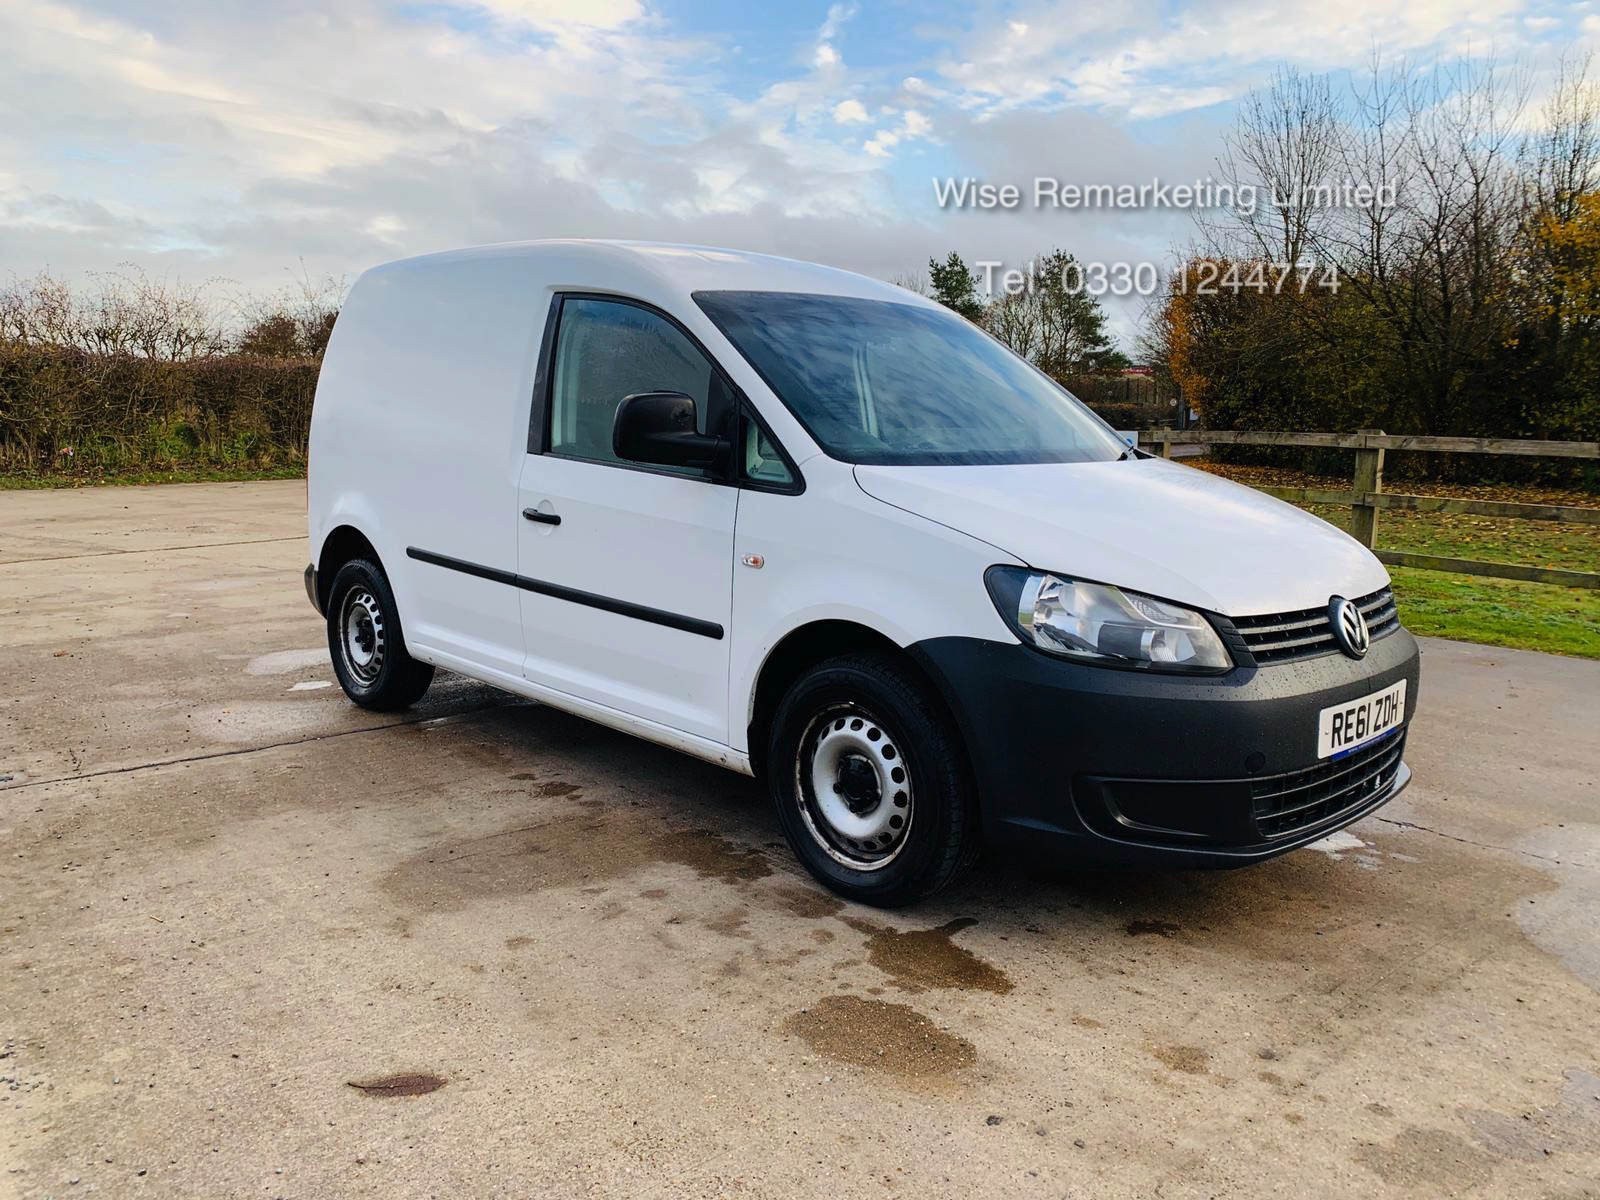 Volkswagen Caddy C20 1.6 TDI - 2012 Model - 1 Keeper From New - Side Loading Door - Ply Lined - Image 6 of 16